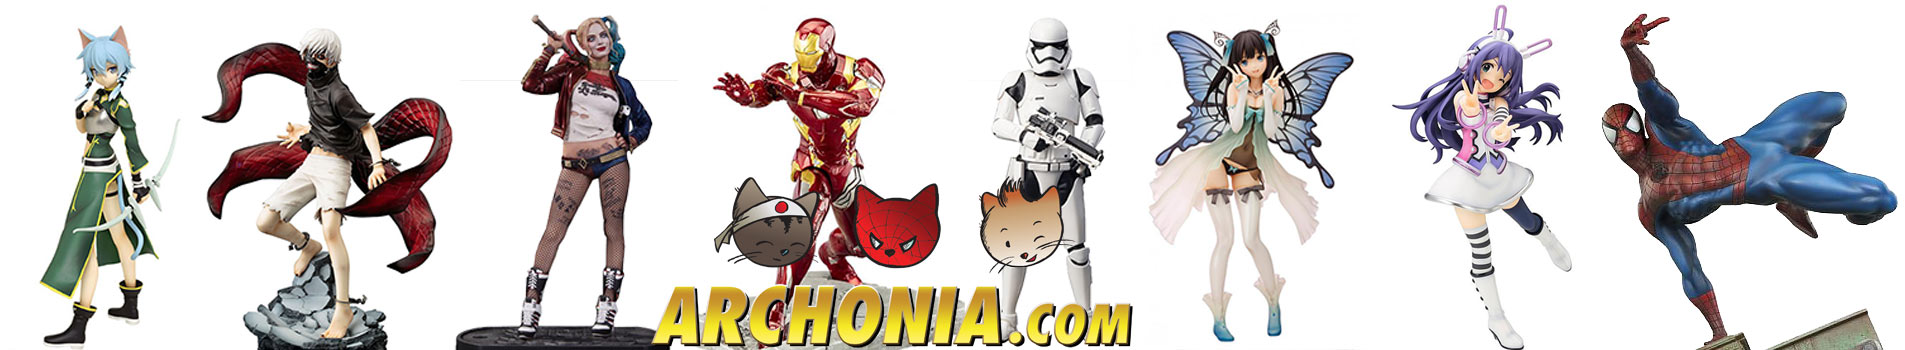 Archonia - Your Pop Culture store